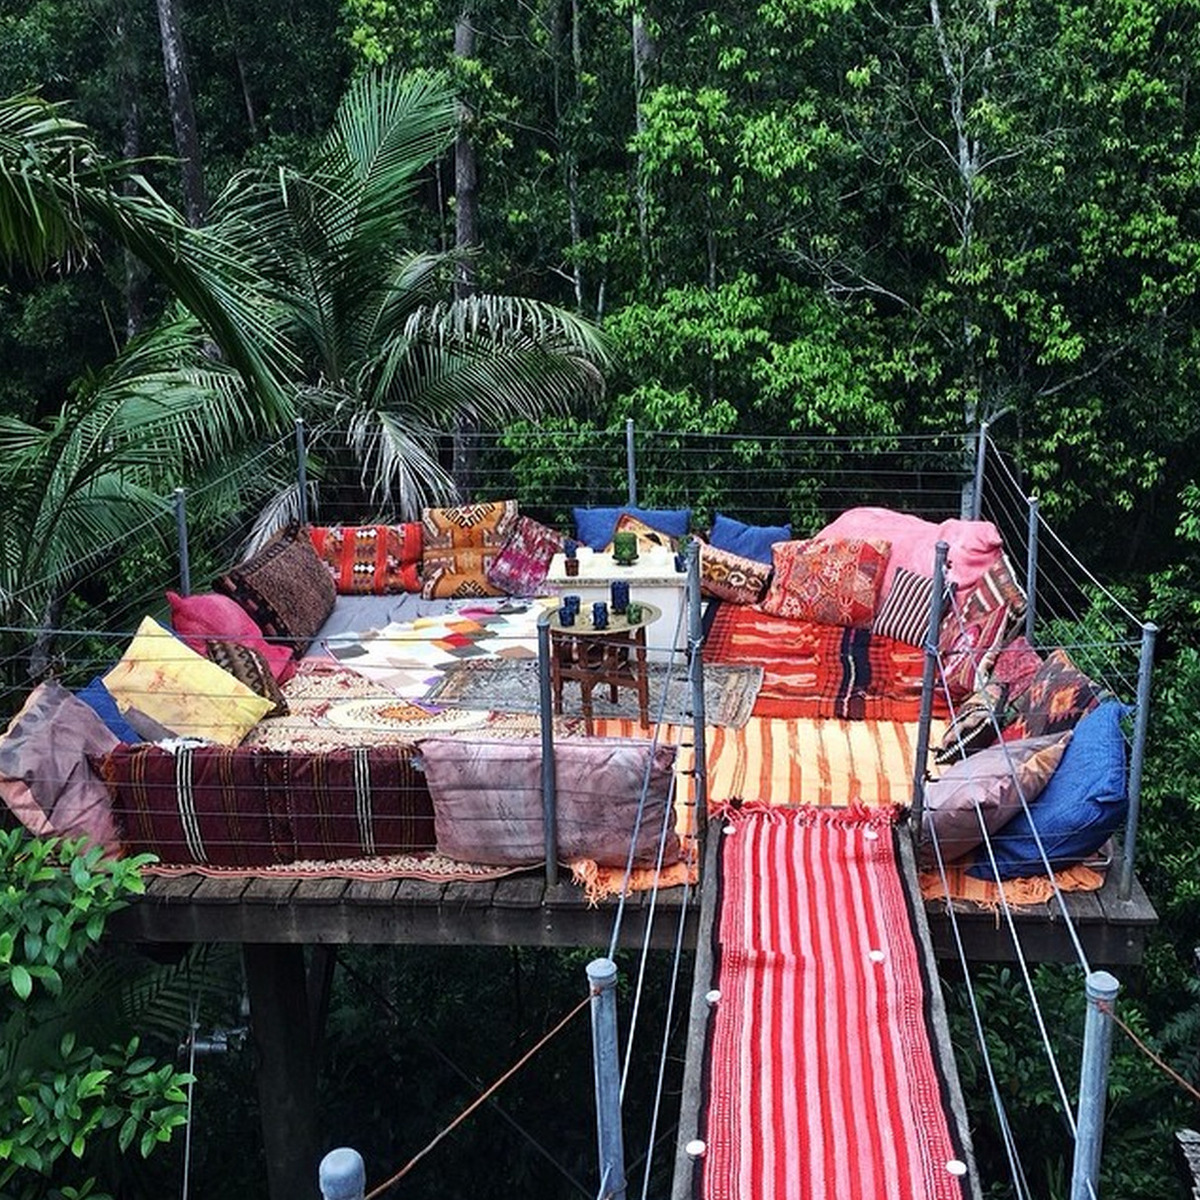 Bellingen treehouse accommodation in NSW filled with boho pillows and decor